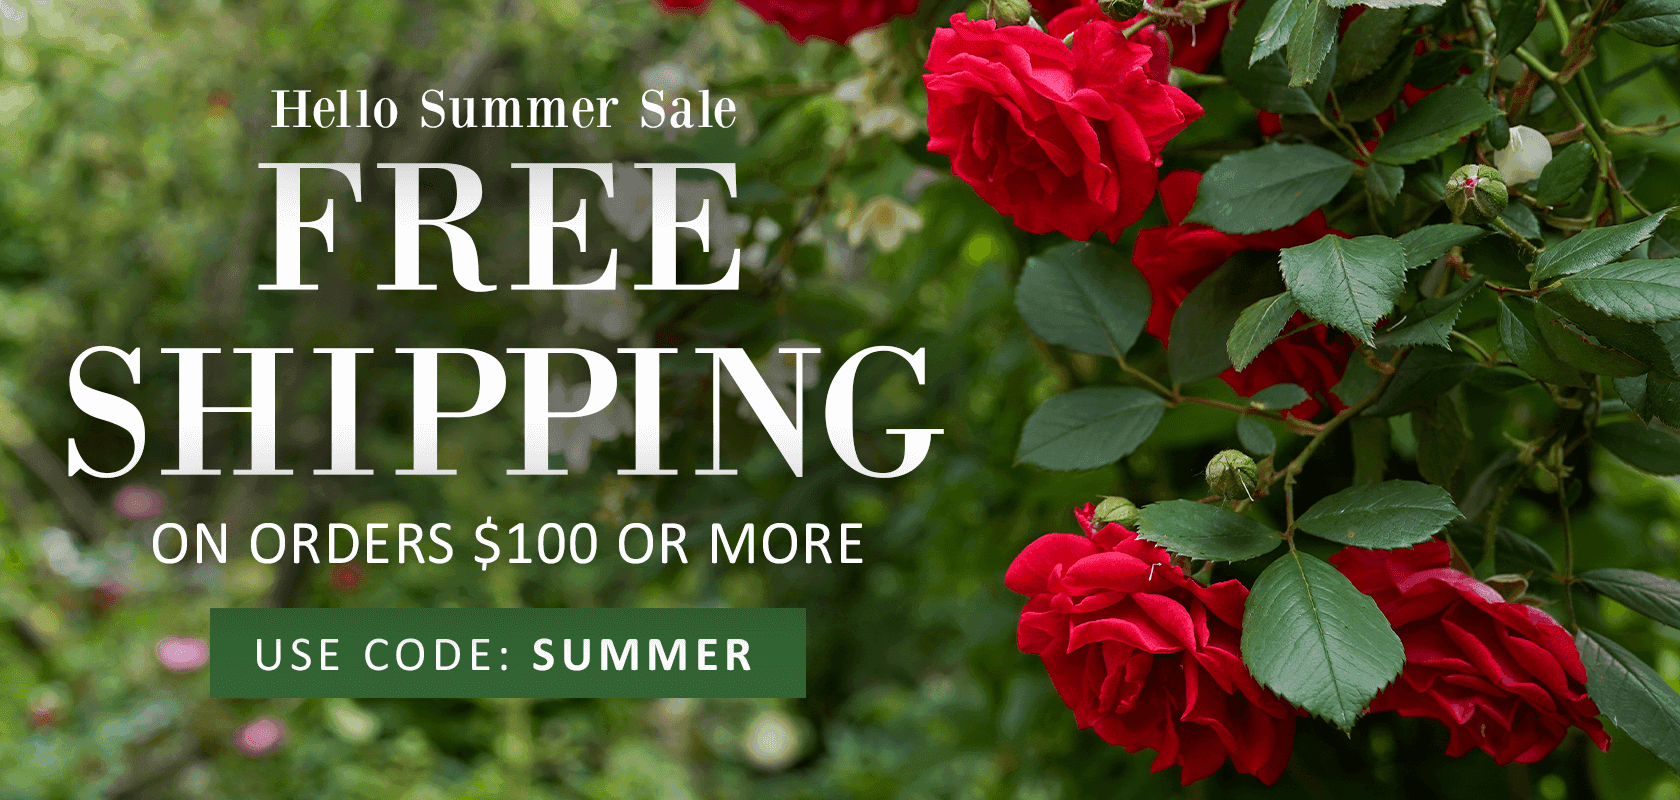 Free Shipping on orders $100 or more use code SUMMER